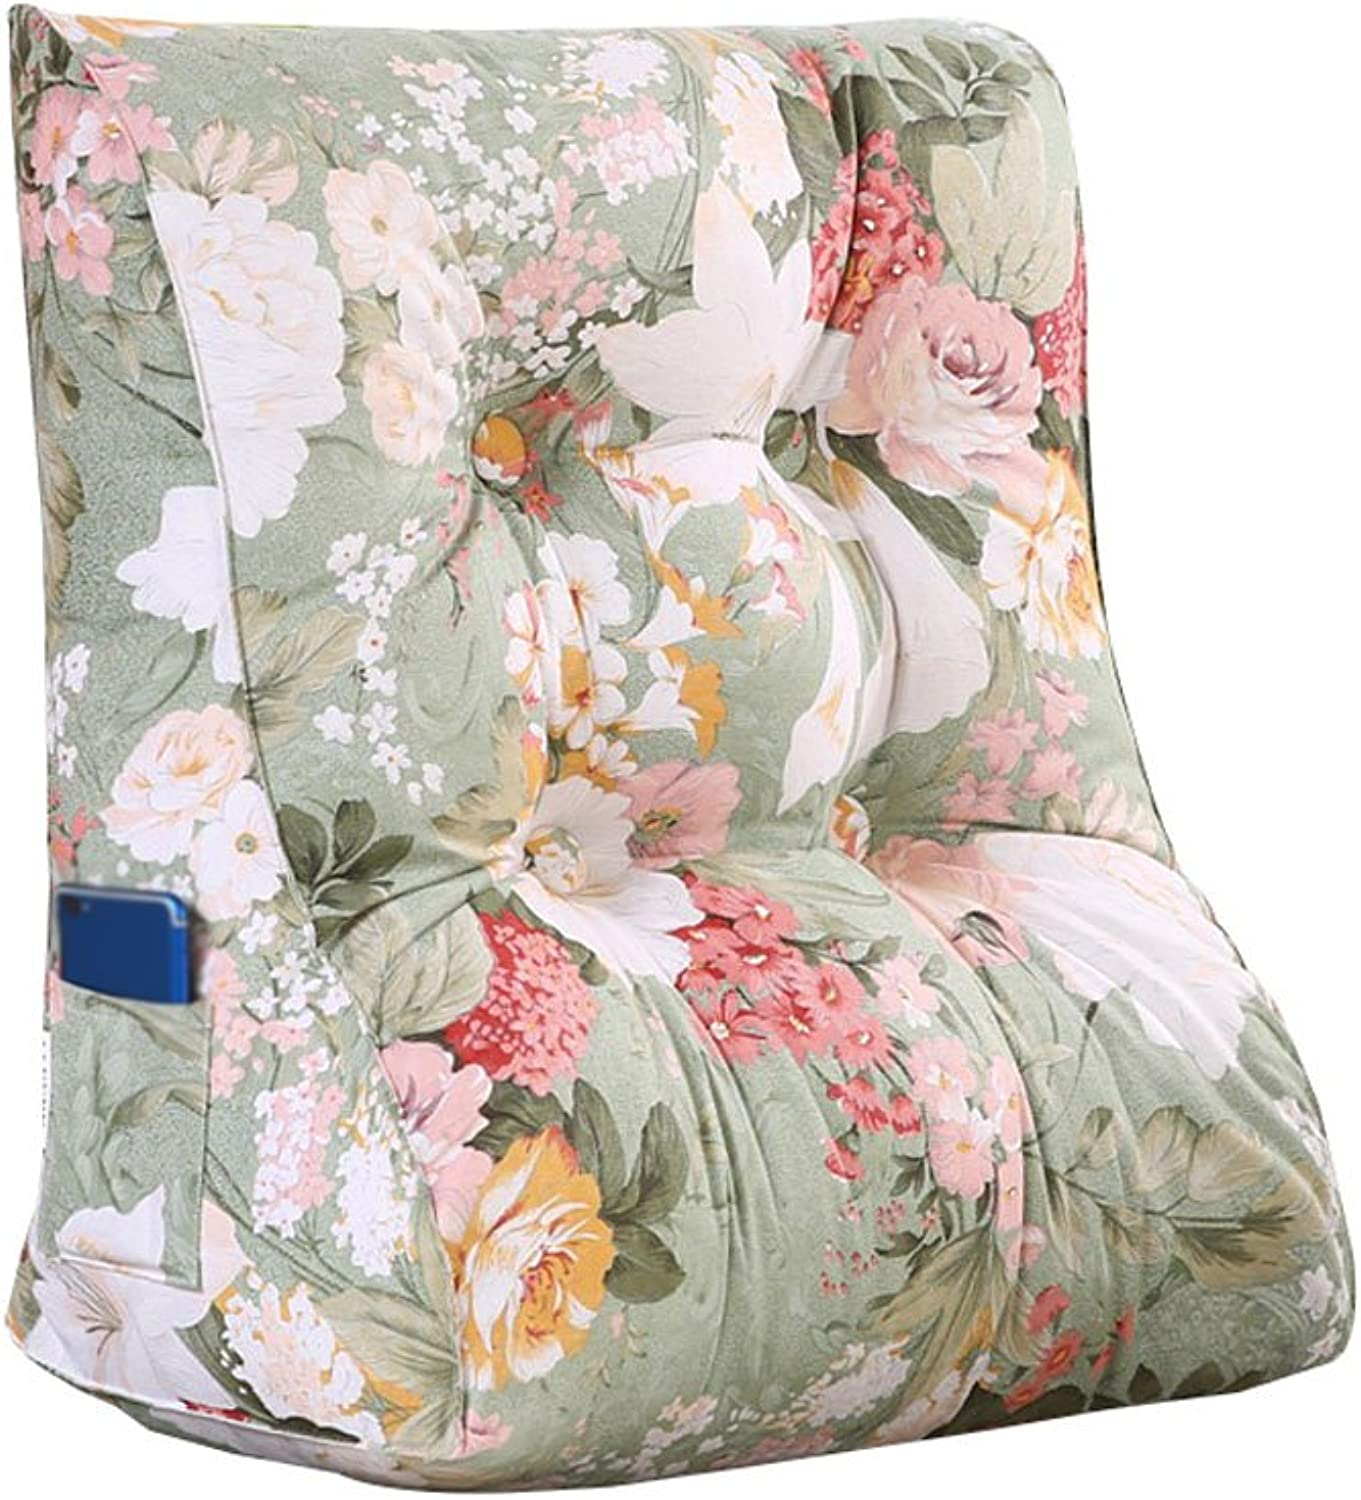 DDSS Bed cushion Triangle Bed Backrest Sofa Cushion Soft Cushions On The Bed Office Lumbar Pillow Neck Guard Predection Waist Washable Flower Pattern  -  (Size   45cm30cm55cm)